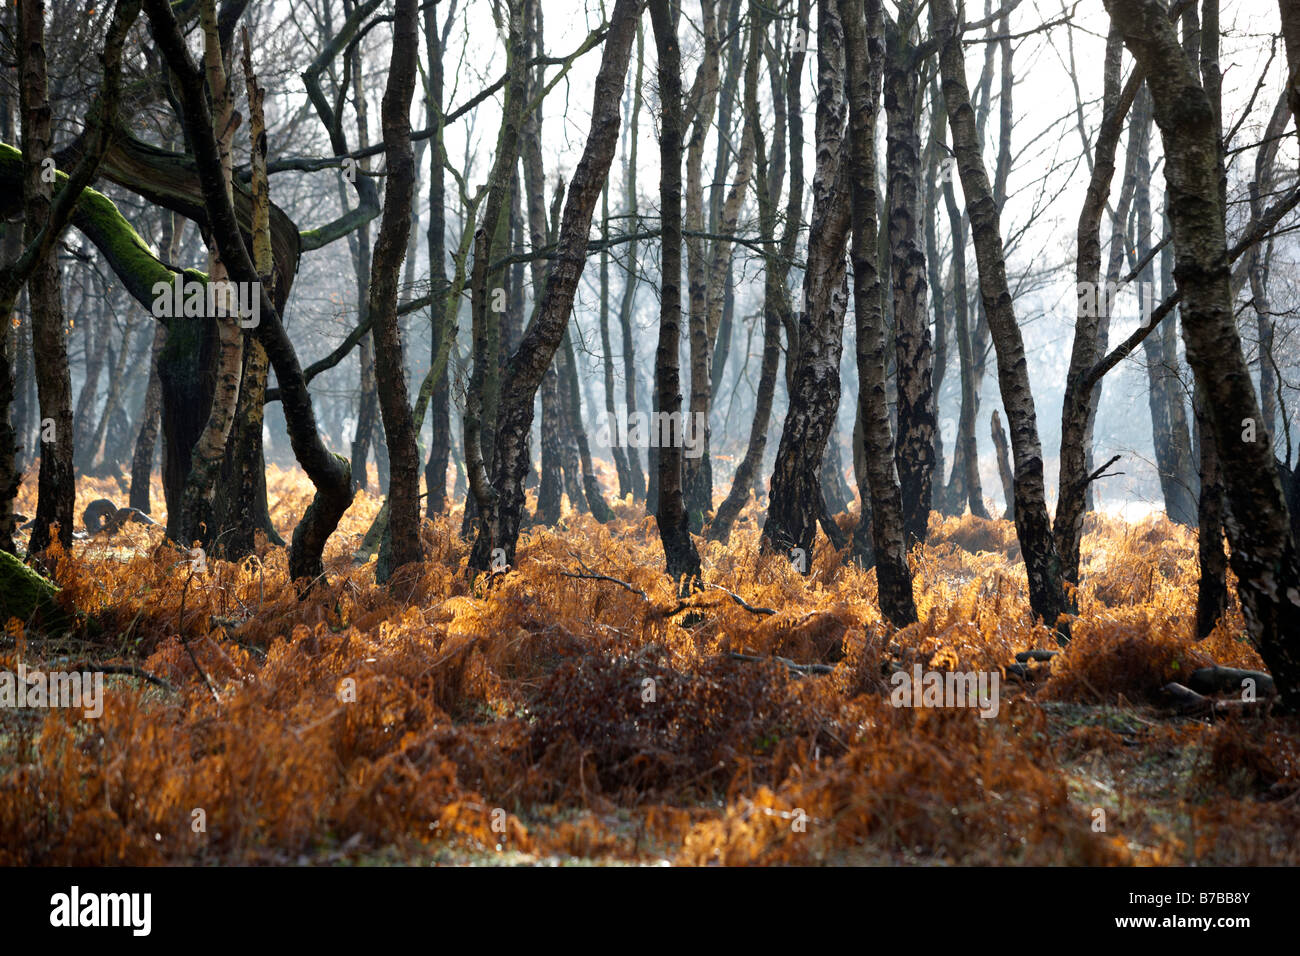 Silver birch trees on Cannock Chase in Staffordshire, UK - Stock Image